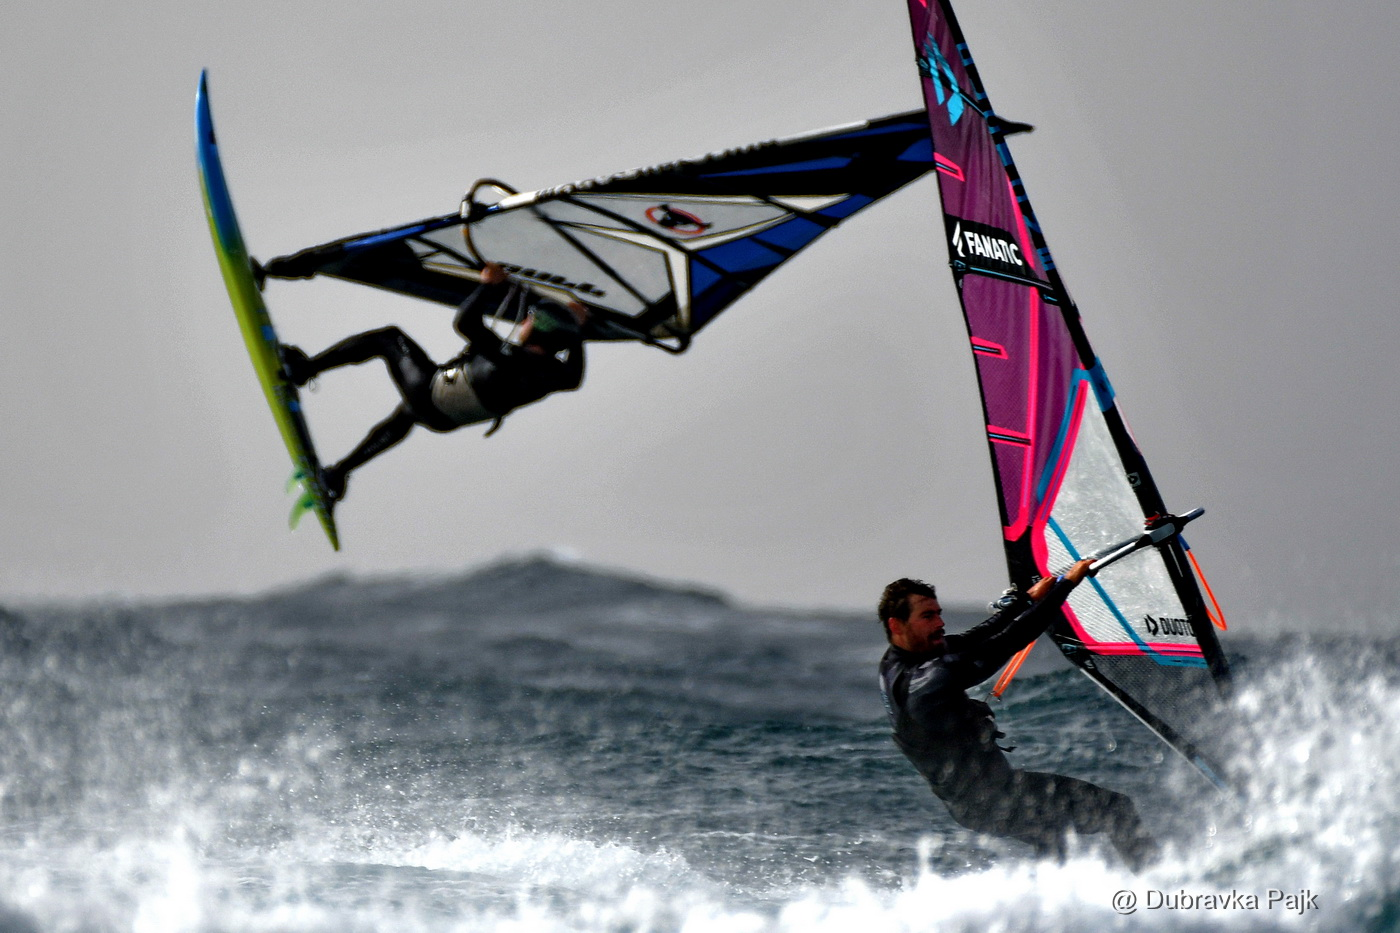 Freestyle Windsurfing – El Medano, Tenerife, Canary Islands, February 2020